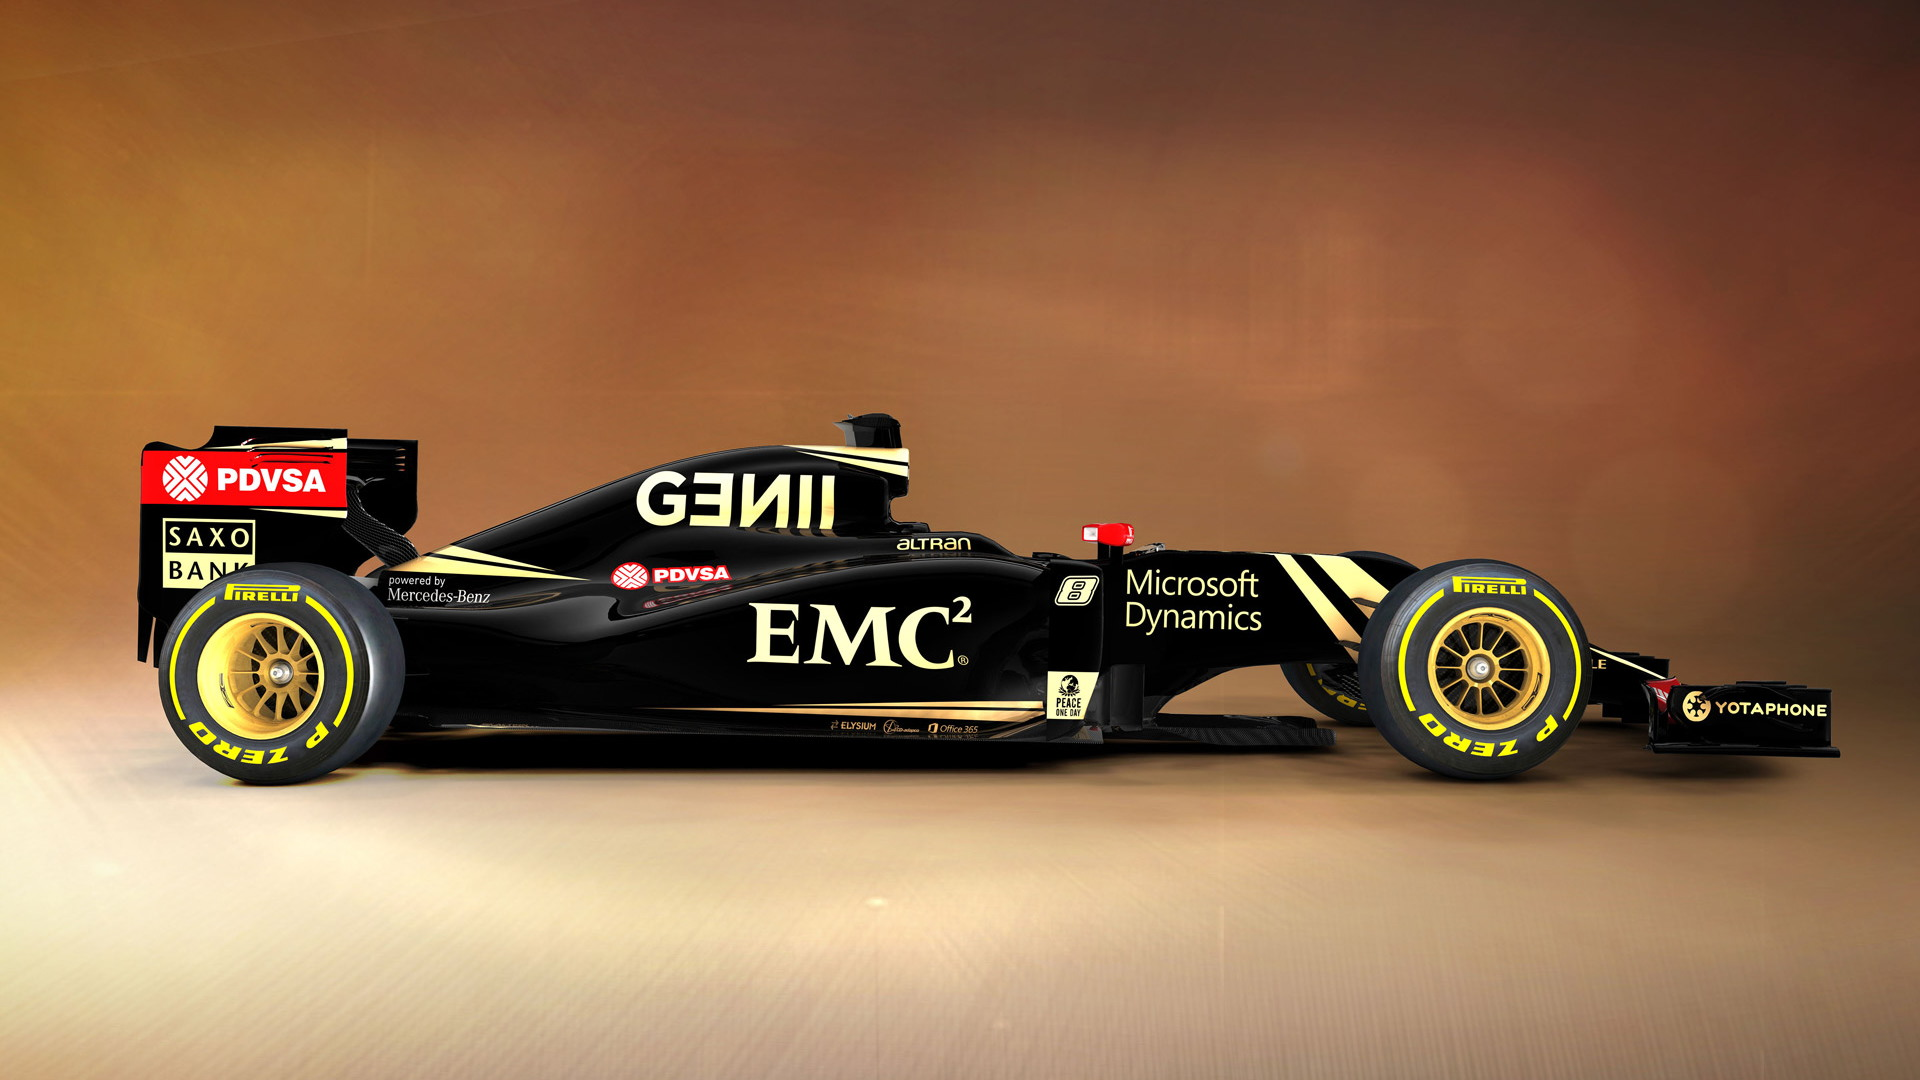 Lotus E23 Hybrid 2015 Formula One car